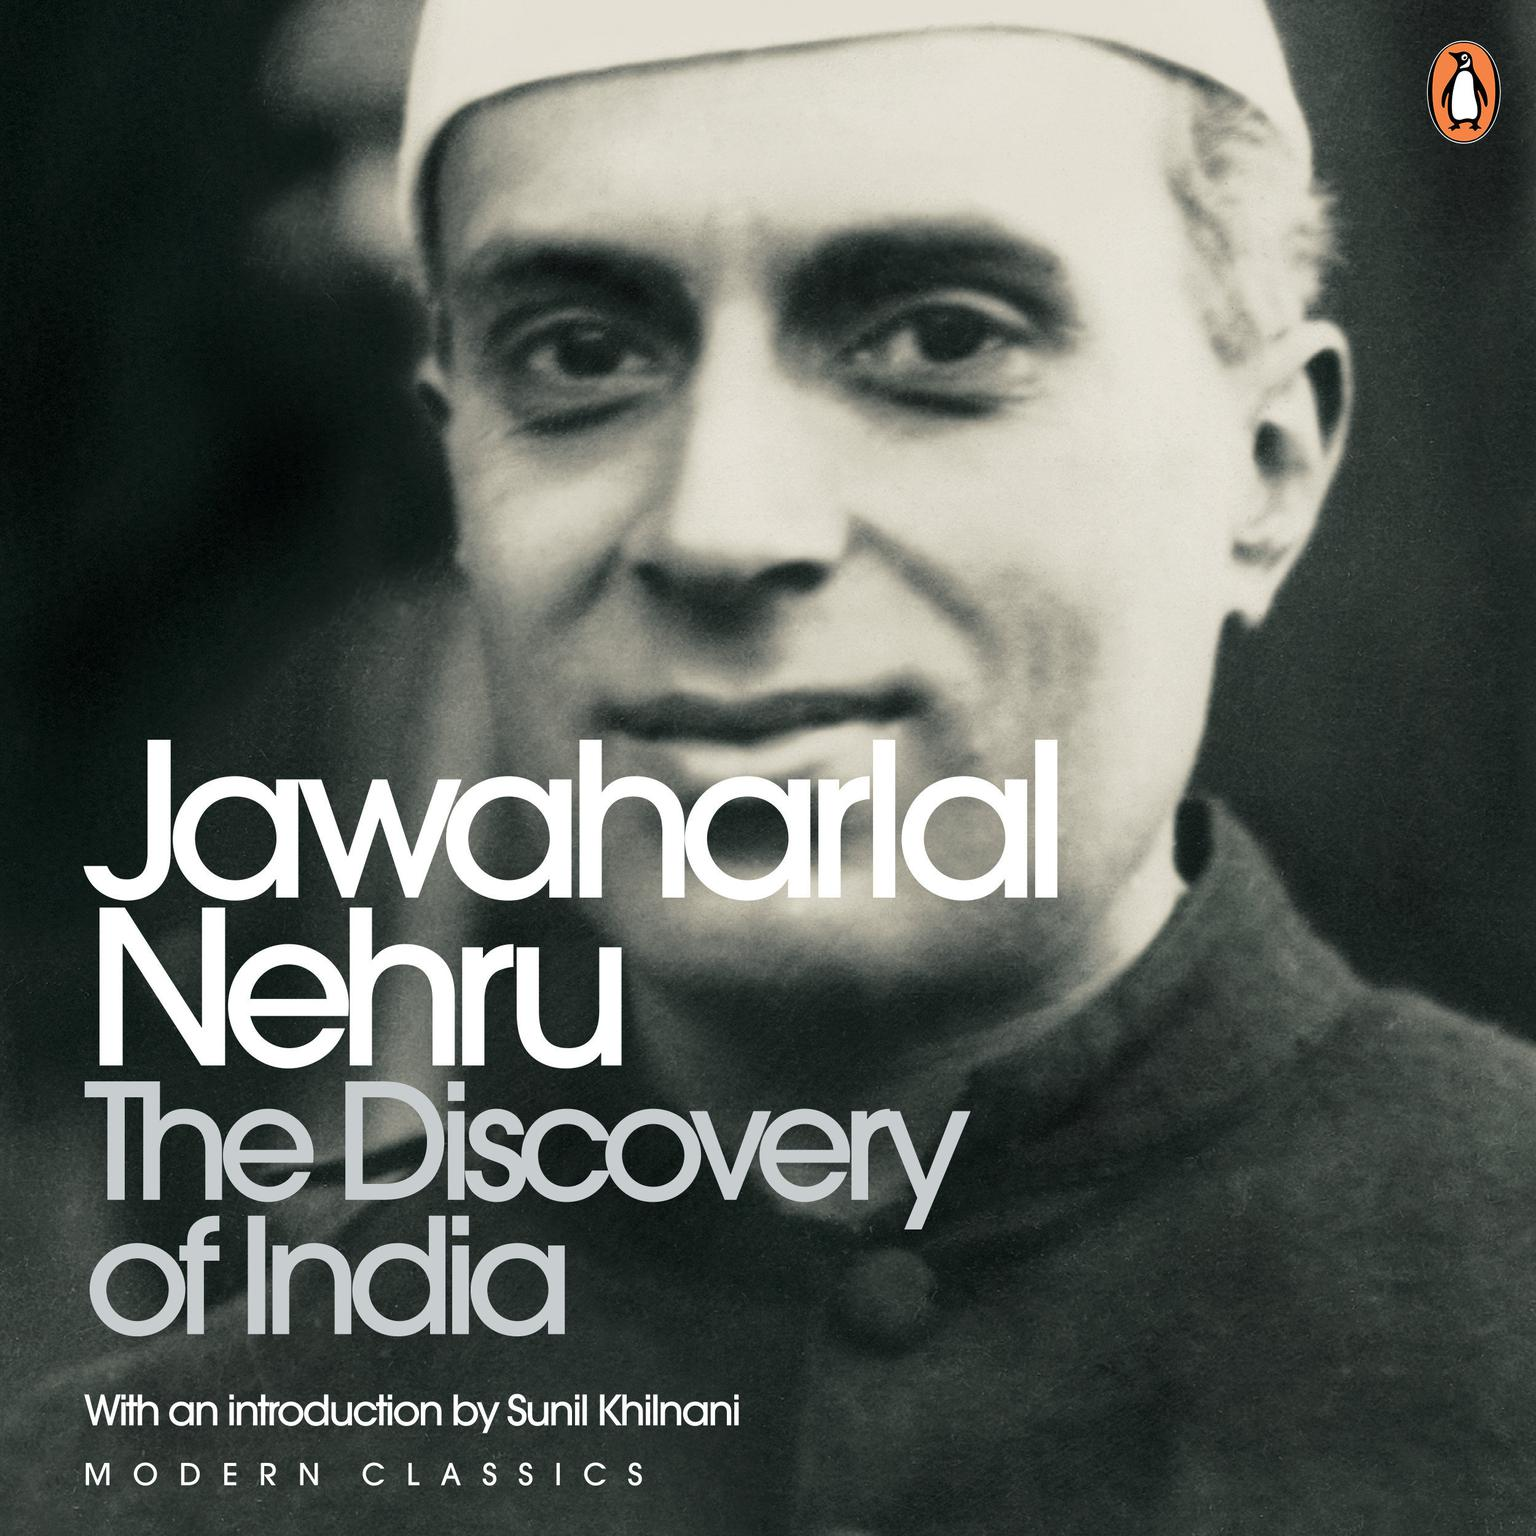 Printable Discovery Of India Audiobook Cover Art